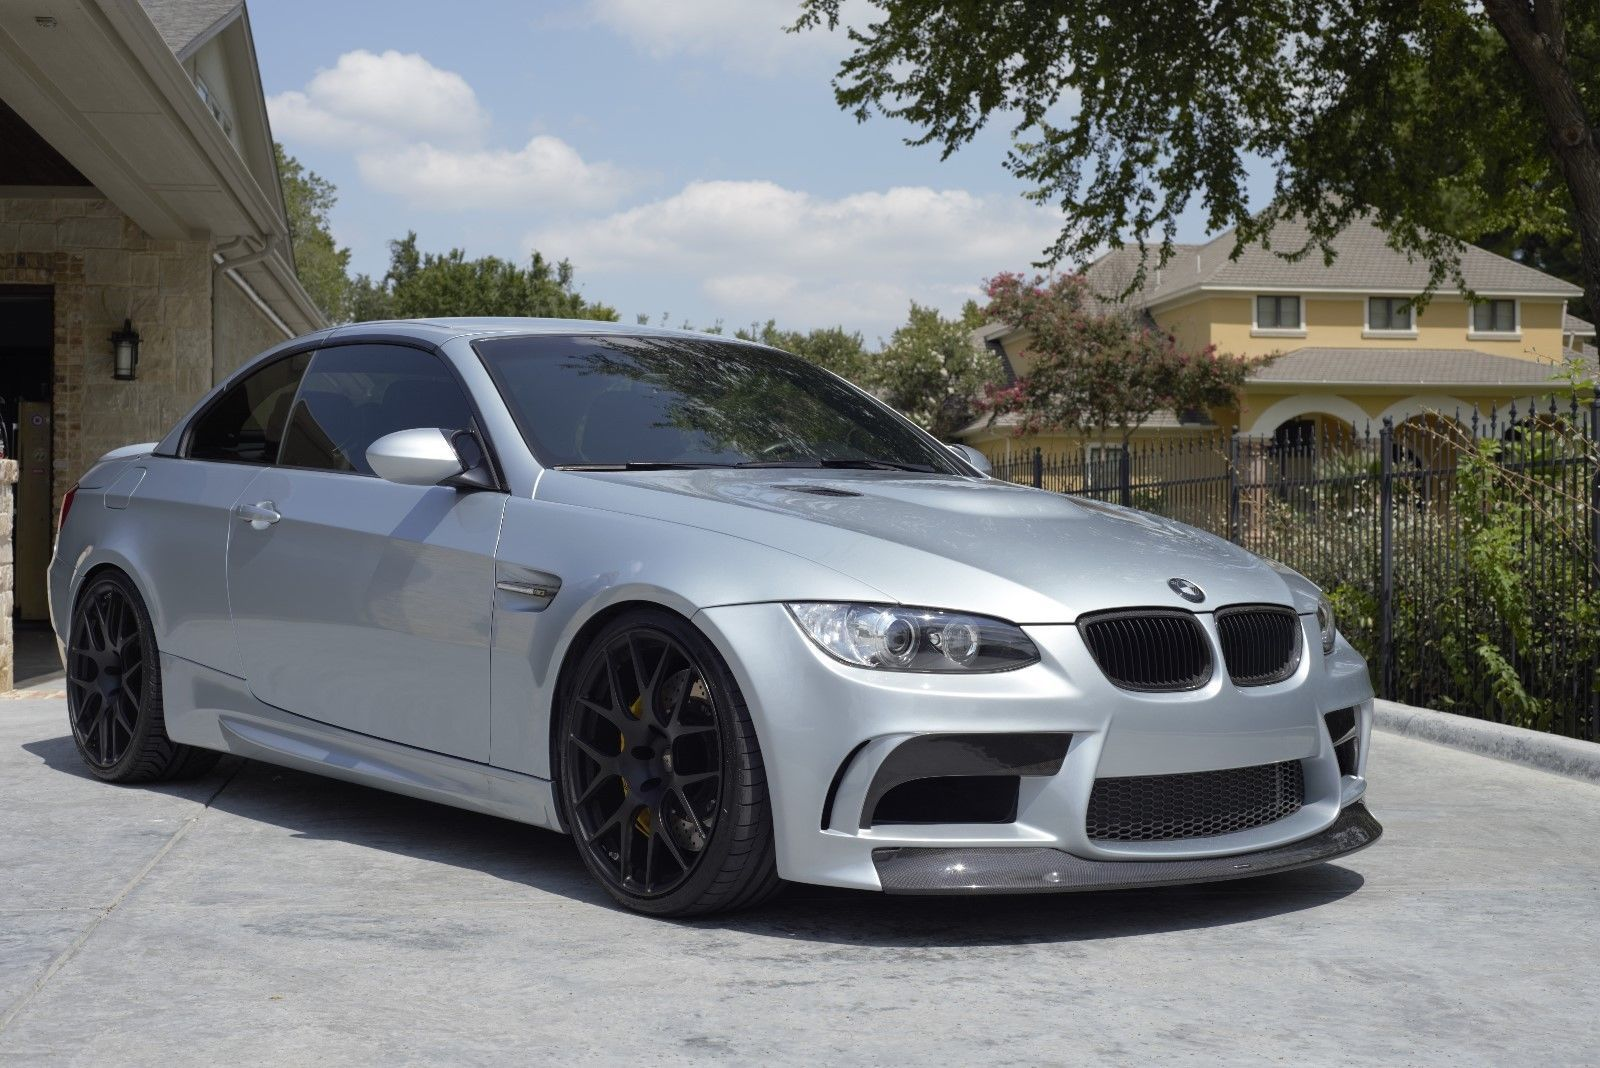 Cool Awesome 2011 BMW M3 2011 BMW M3 E93 Everyday Supercar 650+ Reliable  Horsepower W